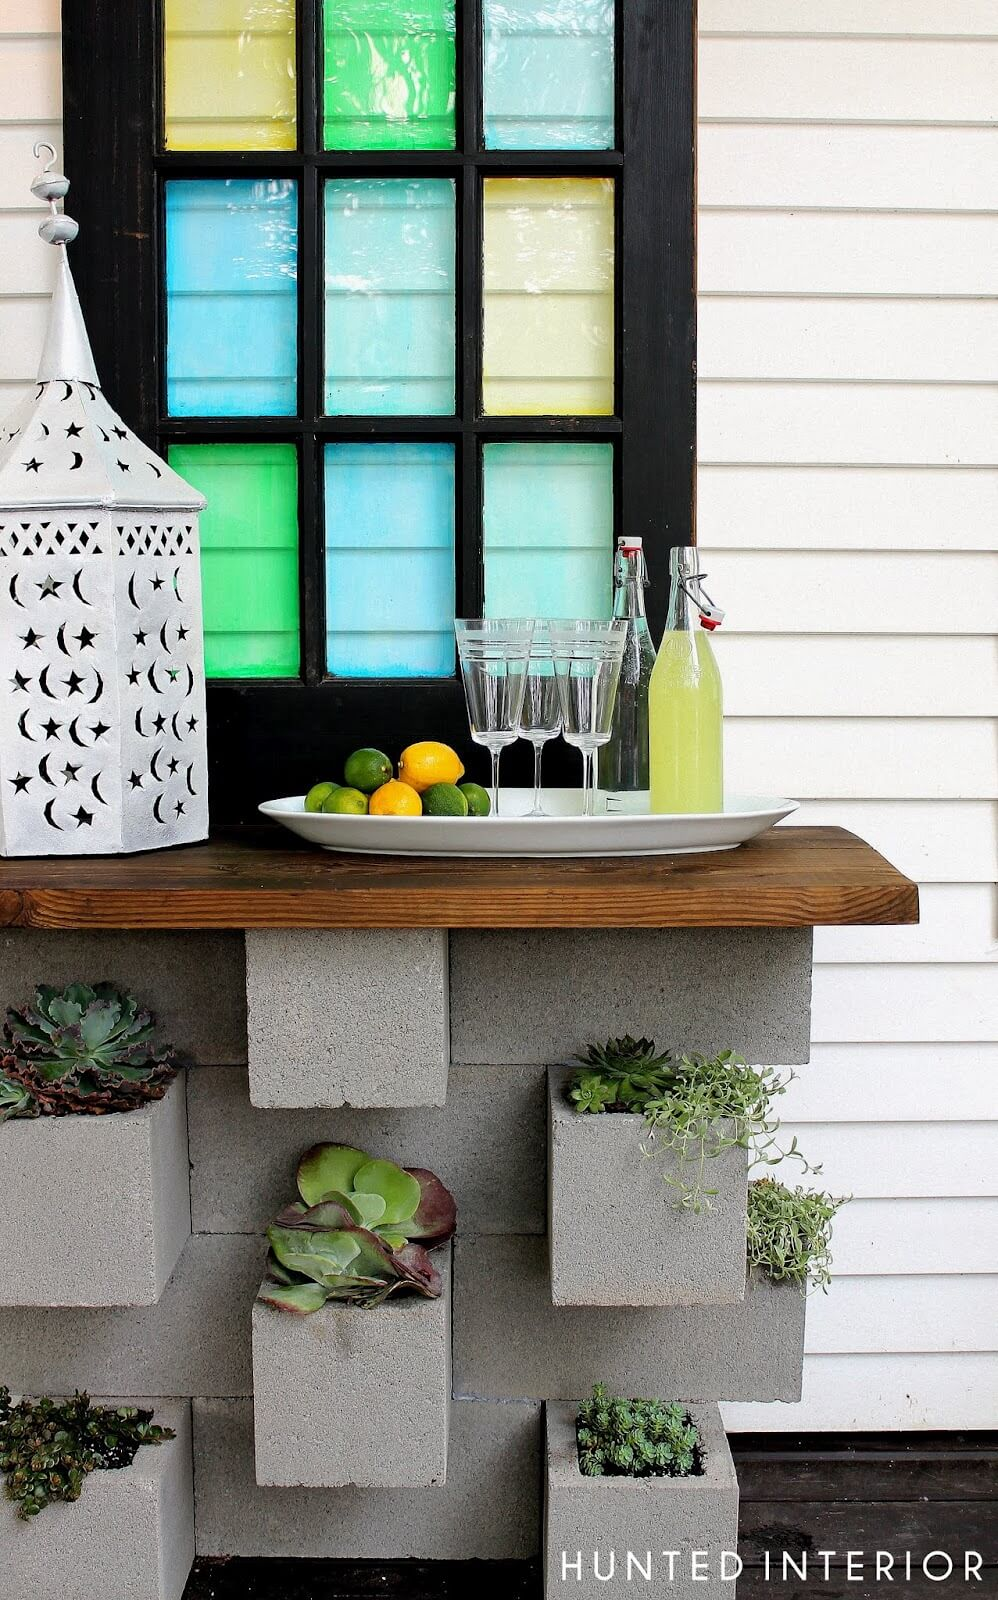 A Simple Wooden Shelf to Hold Drinks